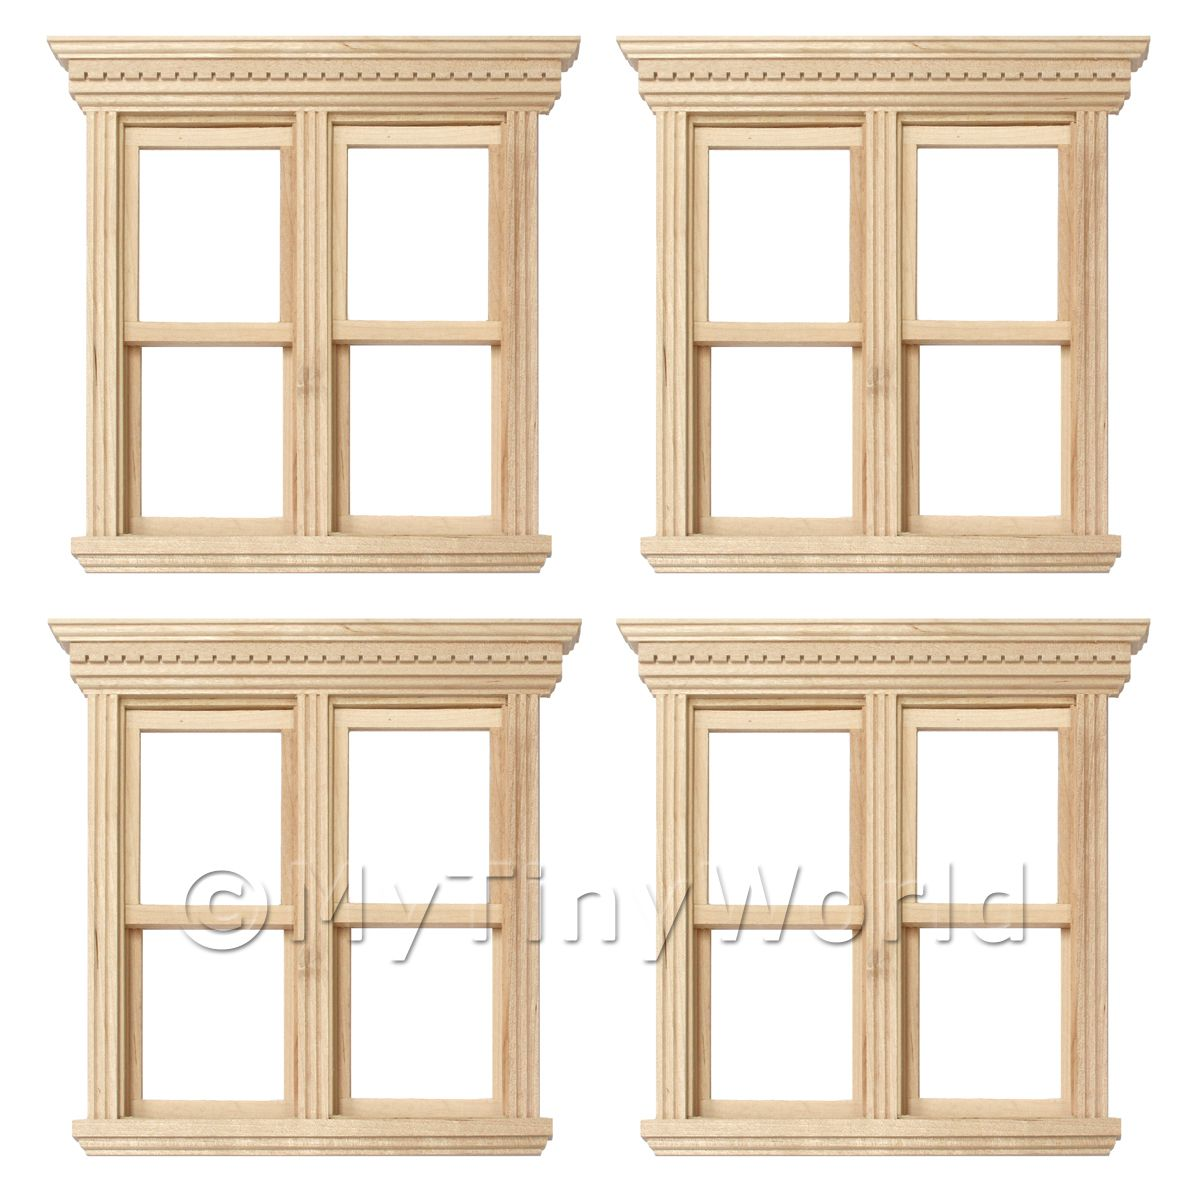 4 x Dolls House Miniature Opening Double Sash Wood Windows